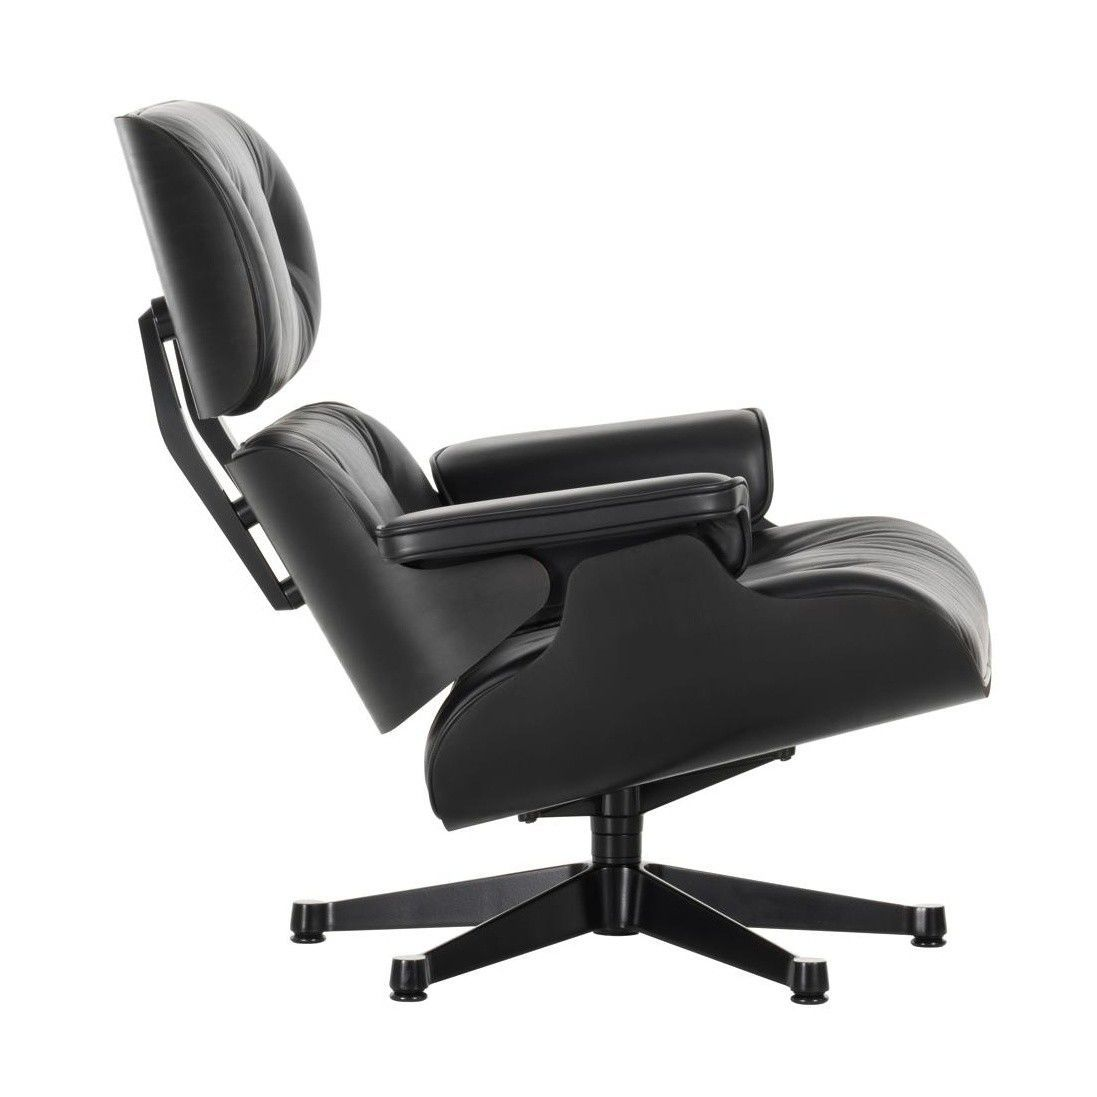 Eames lounge chair xl new size vitra for Eames chair vitra replica